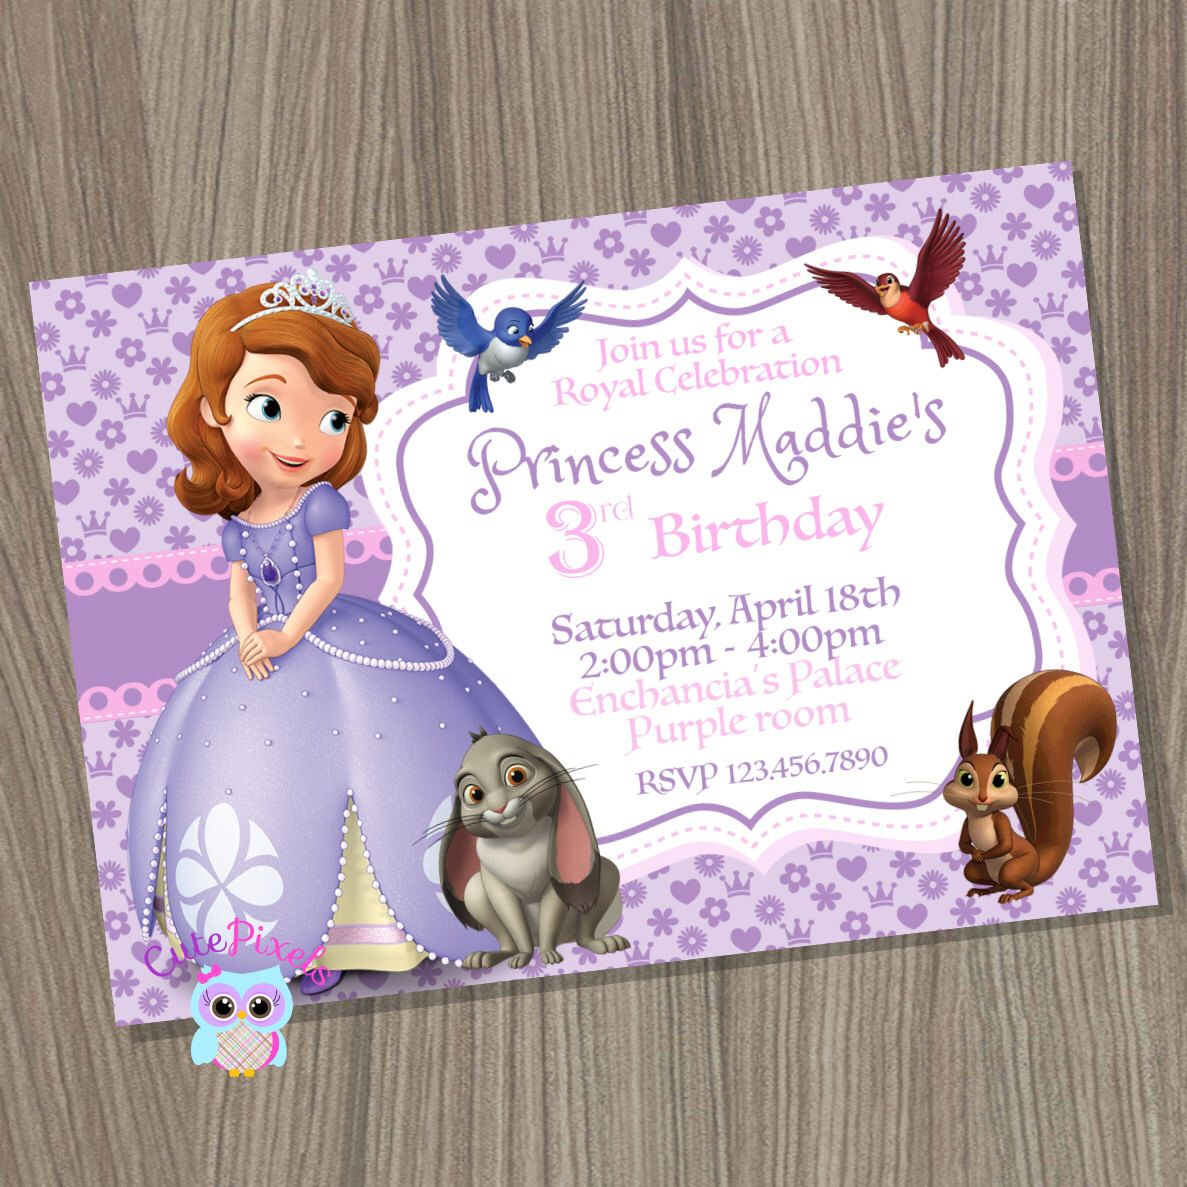 Sofia the first invitation princess sofia invitation princess sofia the first invitation princess sofia invitation princess birthday invitation sofia the first stopboris Image collections